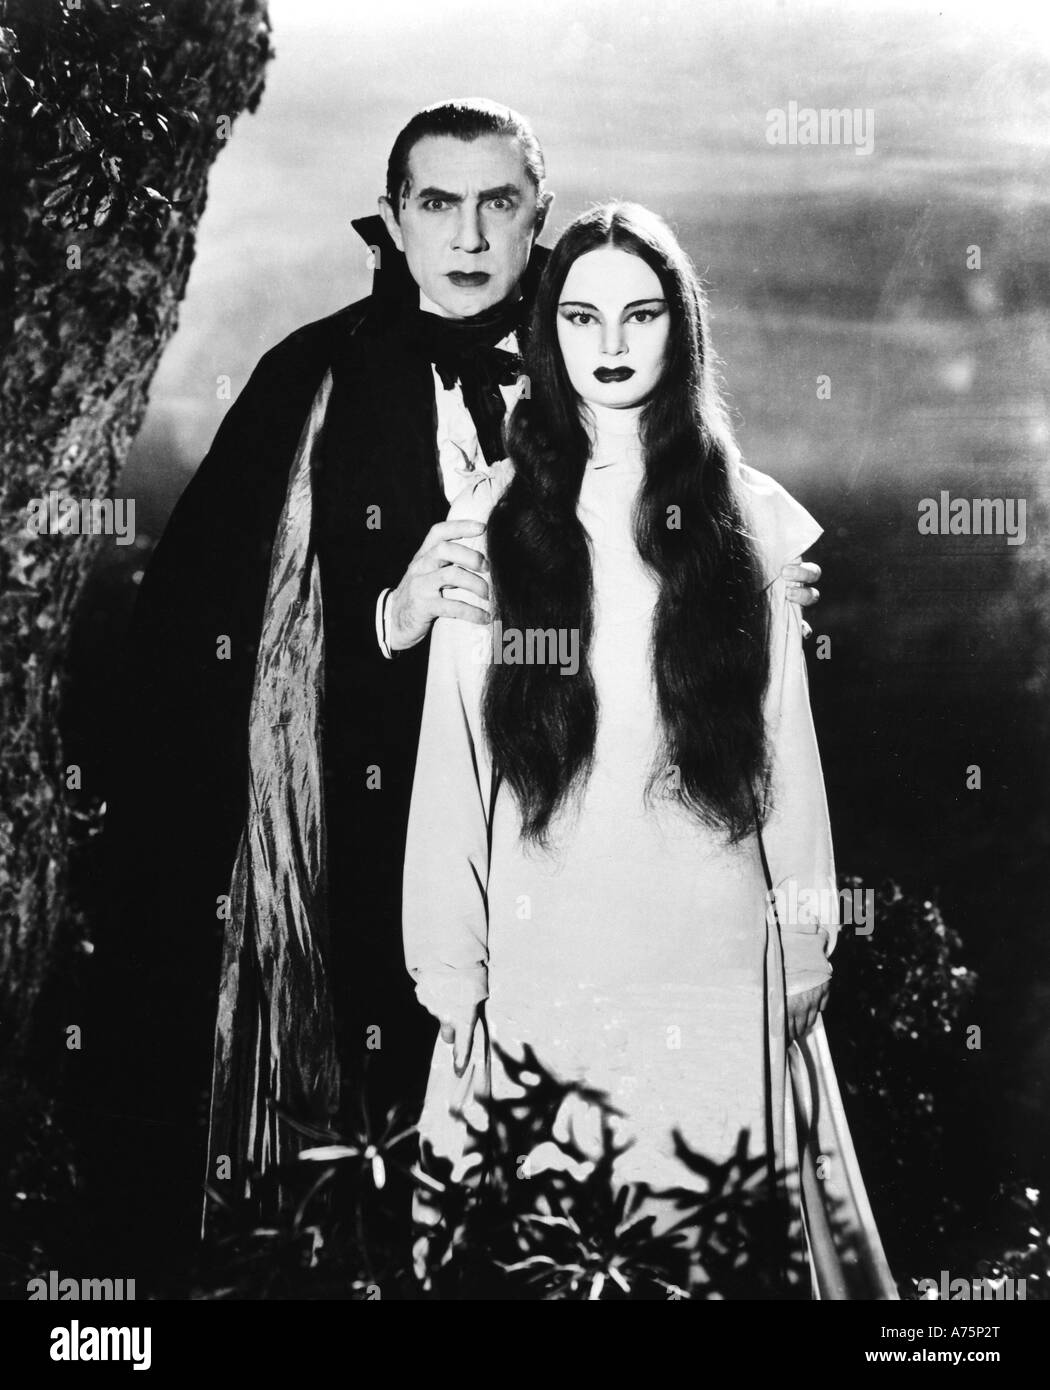 DRACULA 1931 Universal film with Bella Lugosi